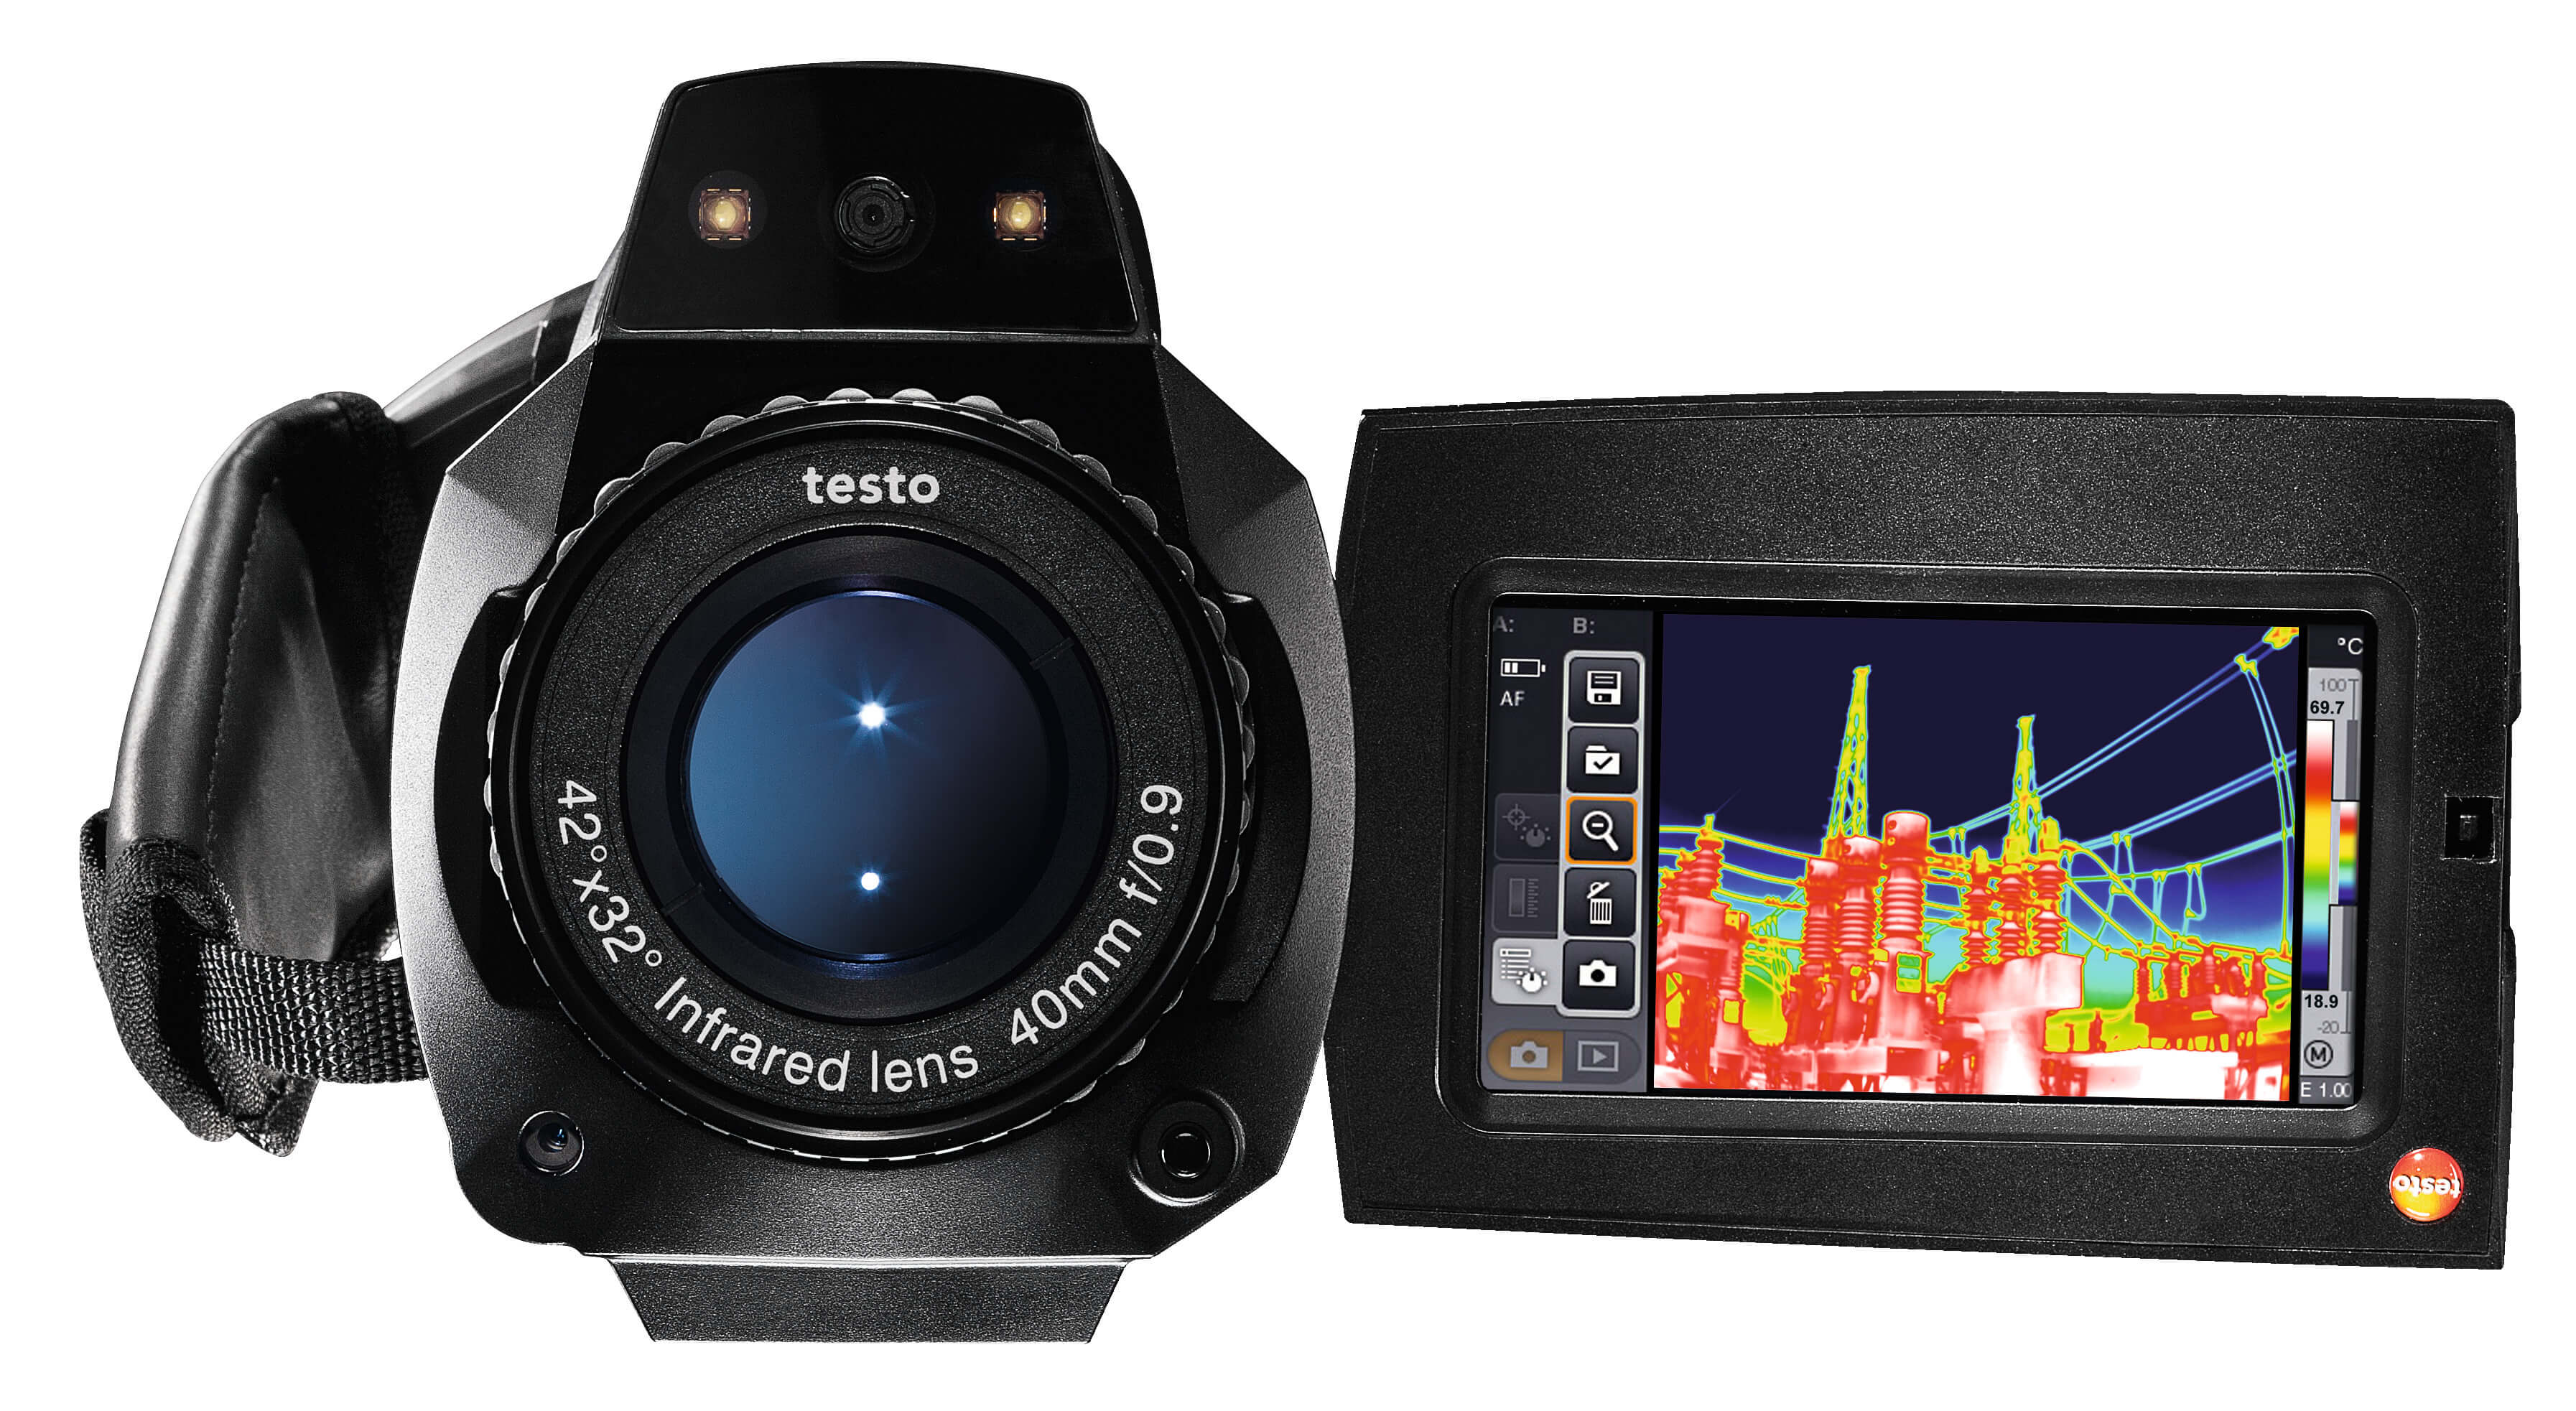 Termografikamera Testo 890-1 med app, streaming og video